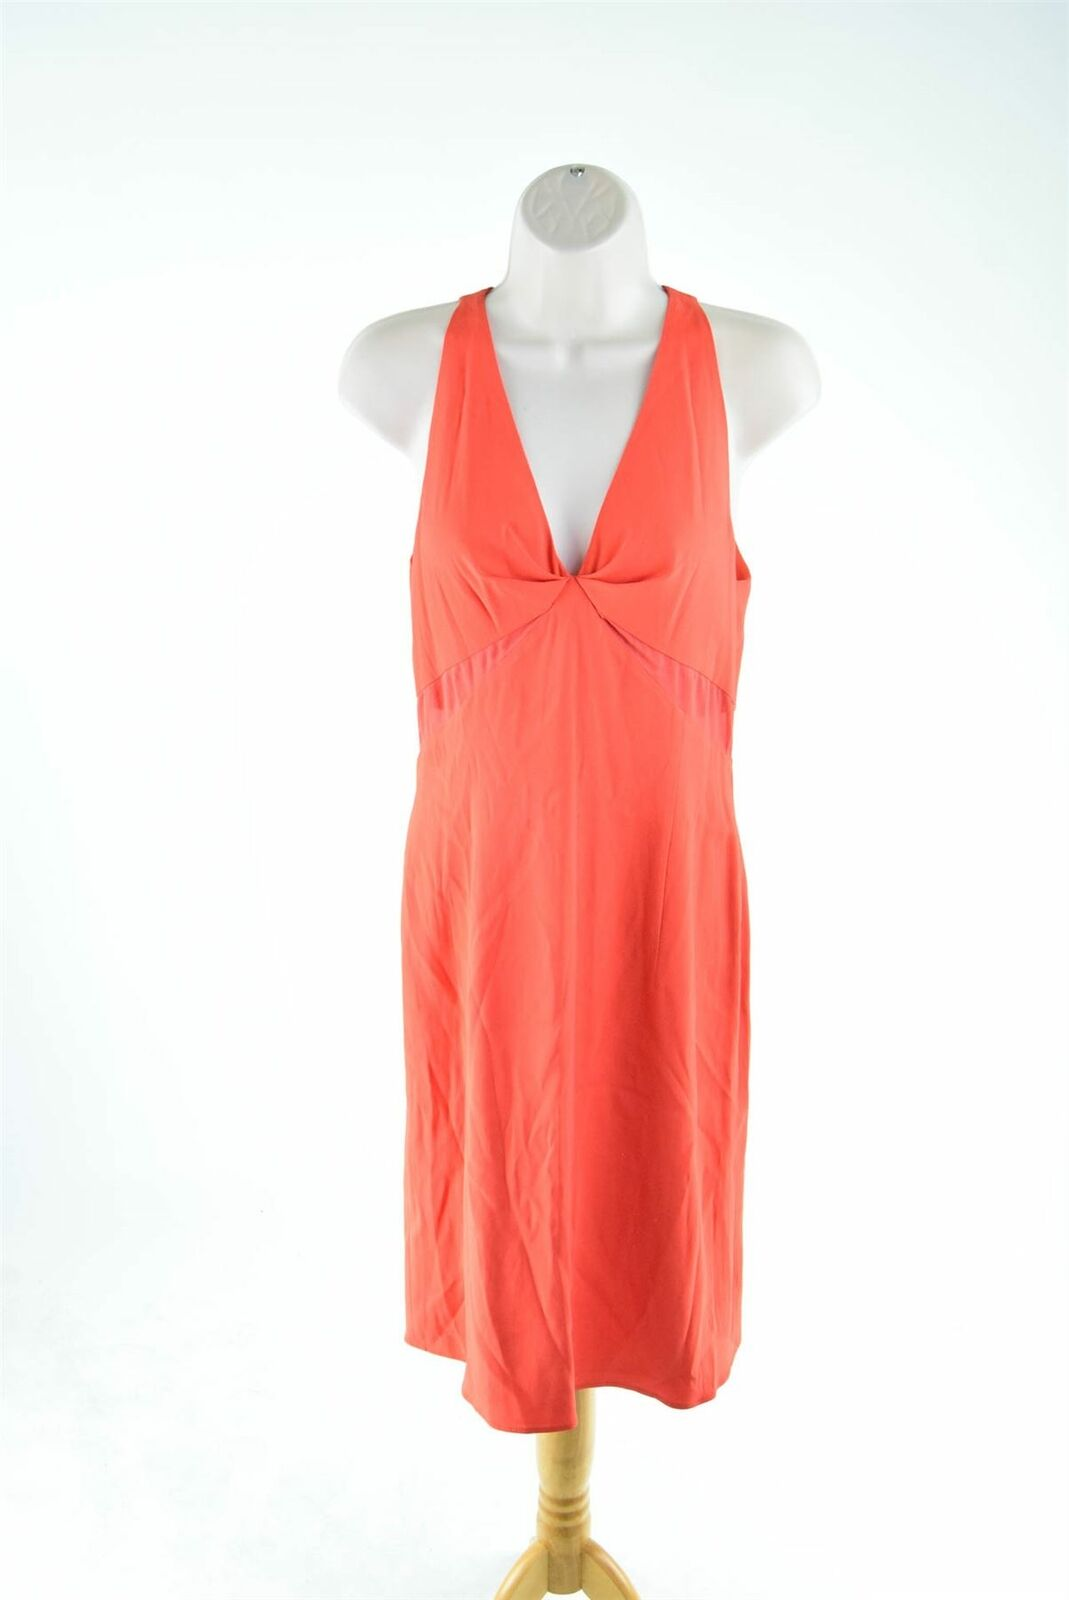 Valentino Roma Orange Sleeveless Dress, UK 8 US 6 EU 38